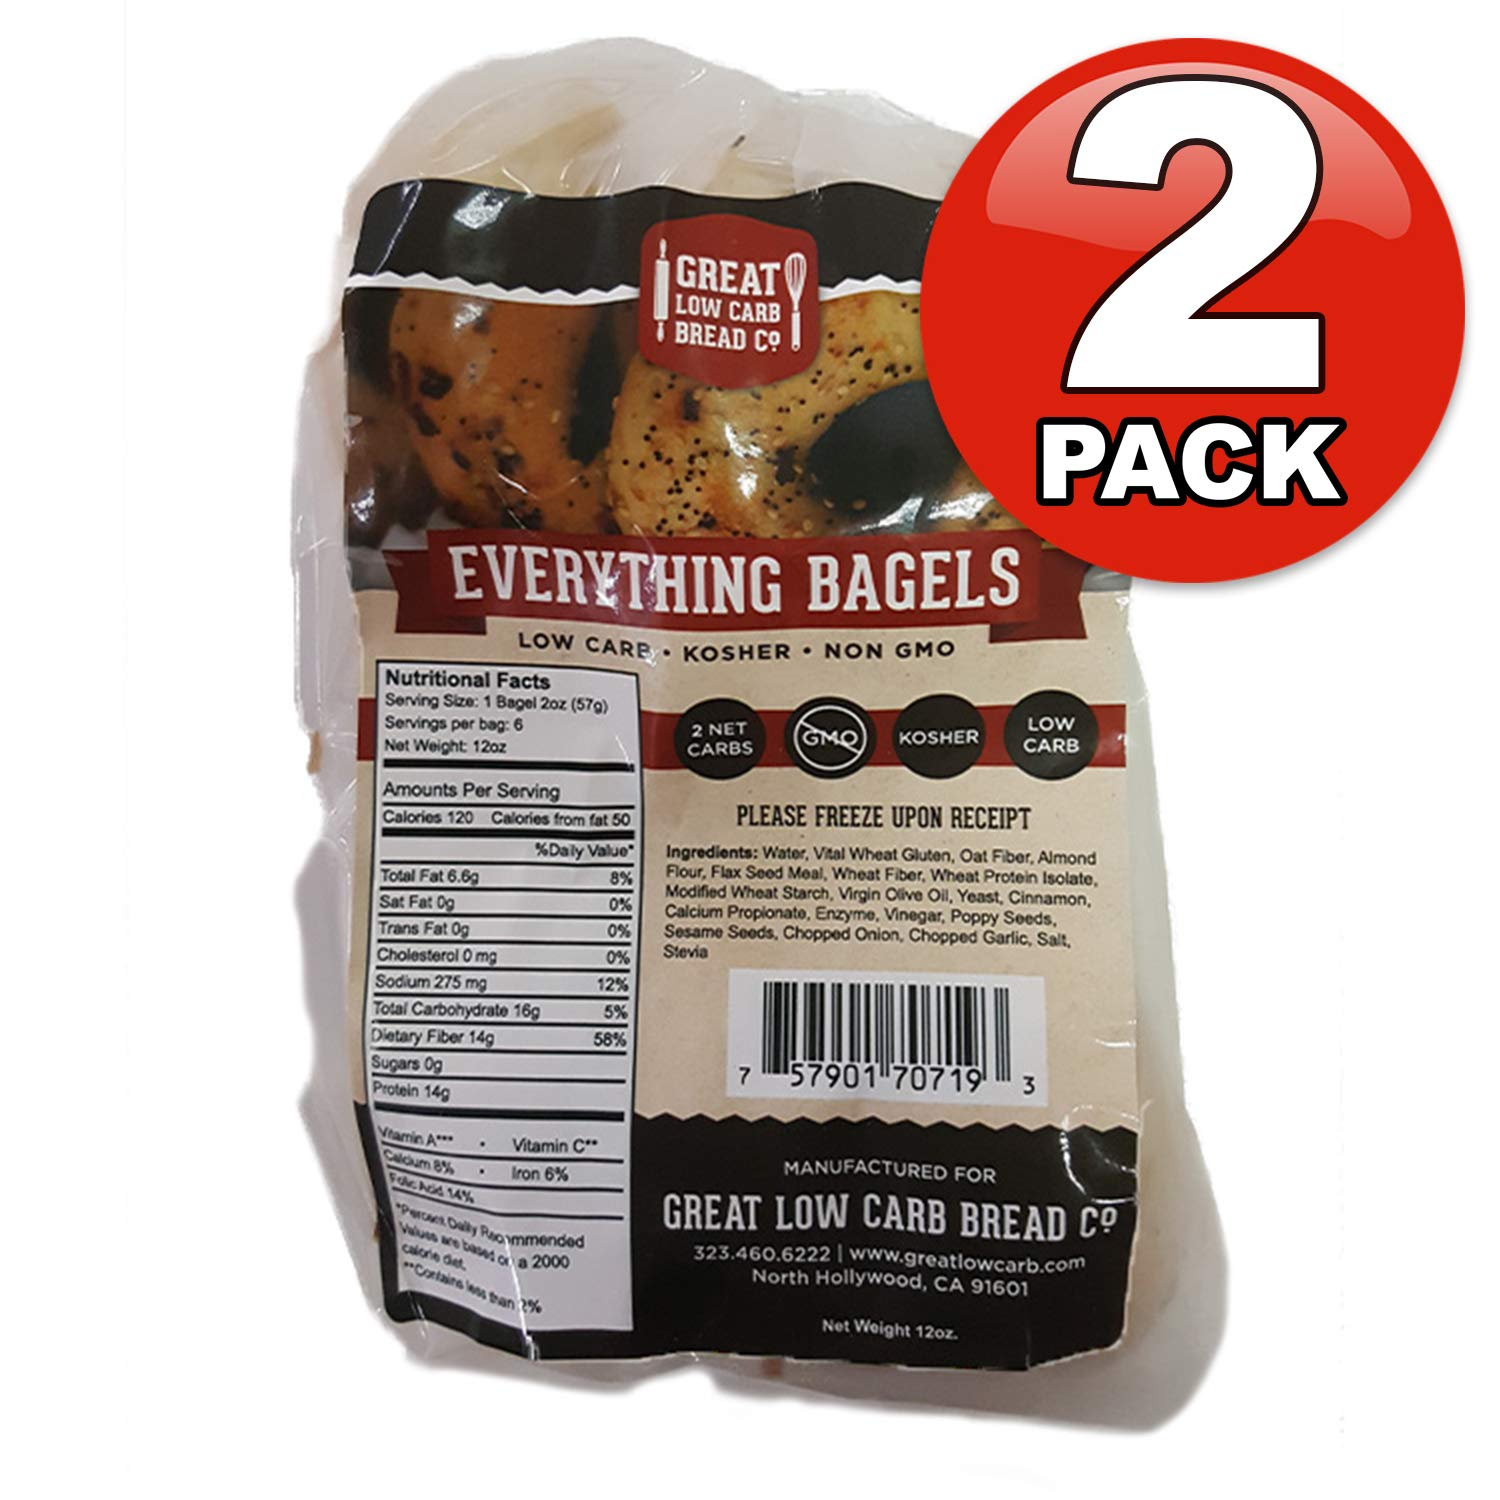 Great Low Carb Everything Bagels 2 Bags by Great Low Carb Bread Company (Image #1)